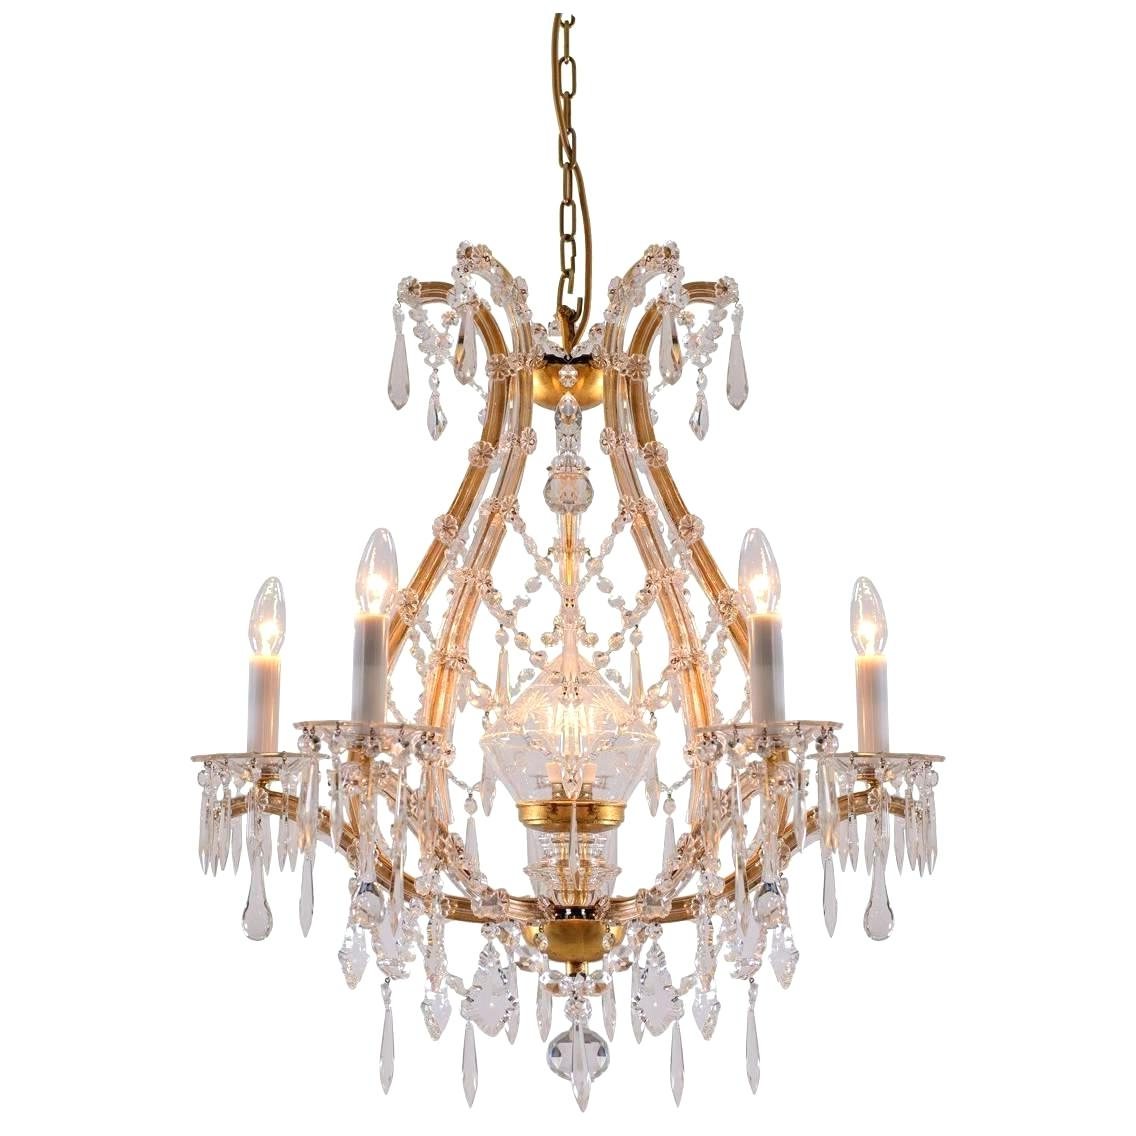 Most Popular Iron And Crystal Chandelier – Ozieaquilar (View 17 of 25)